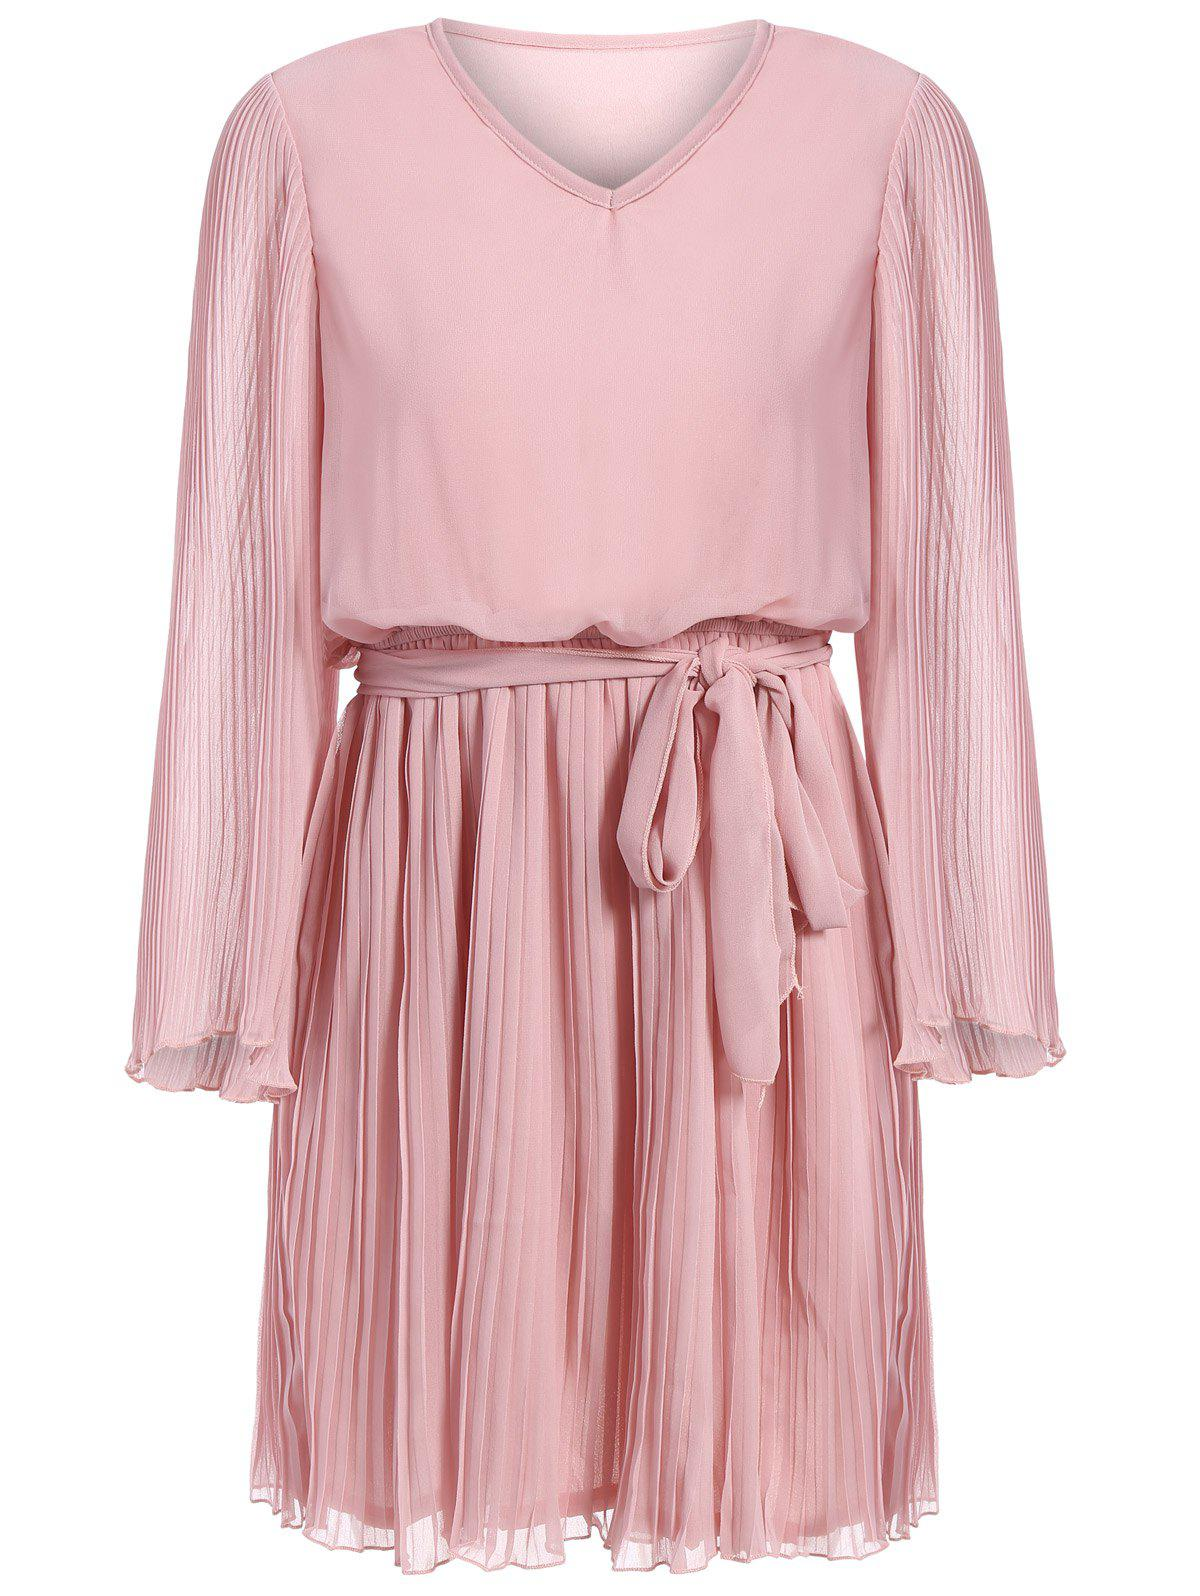 Long Sleeve Chiffon Pleated Dress - PINK L